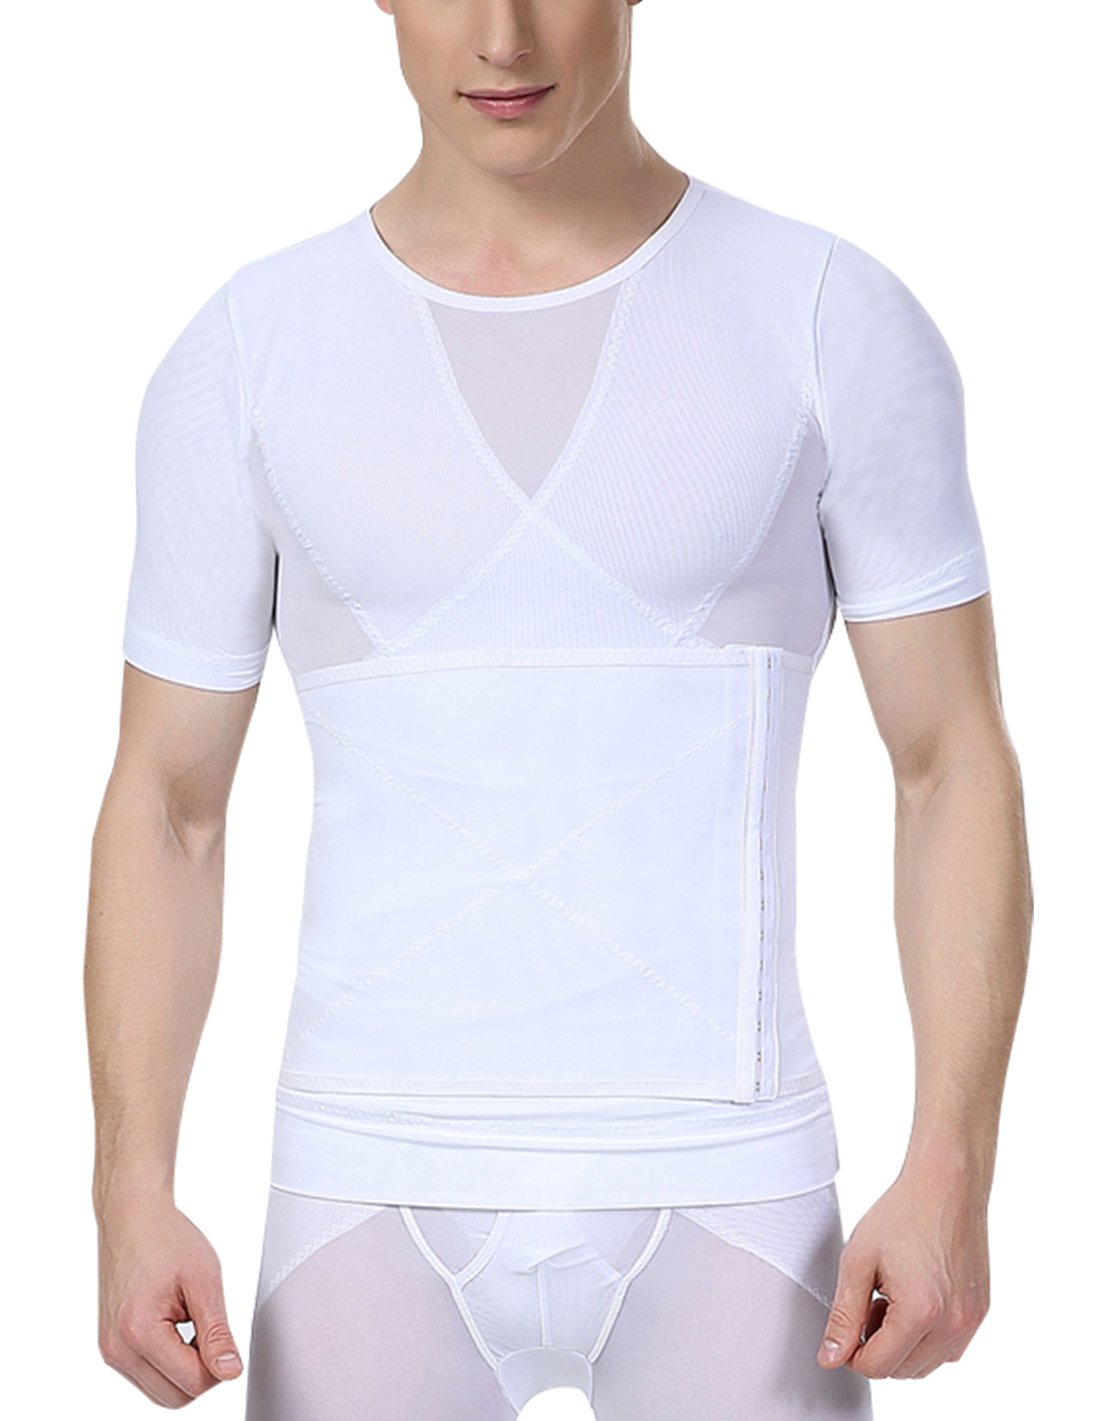 Aieoe Men Compression Shirt Chest Slimming Body Shaper Undershirt Hook & Eye Closure